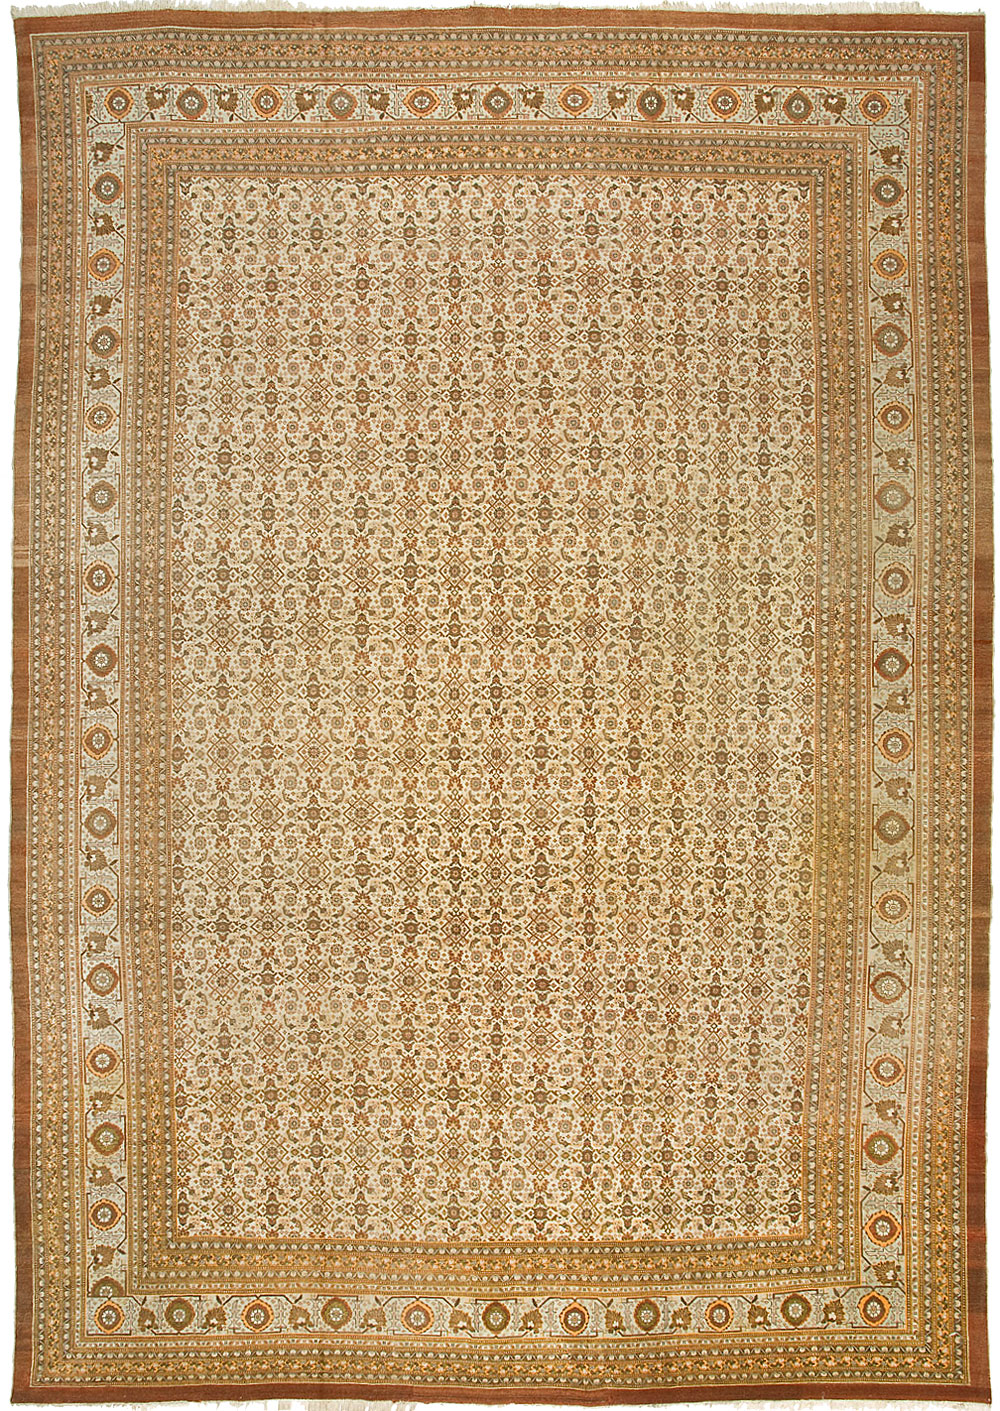 Tabriz Carpet_17351